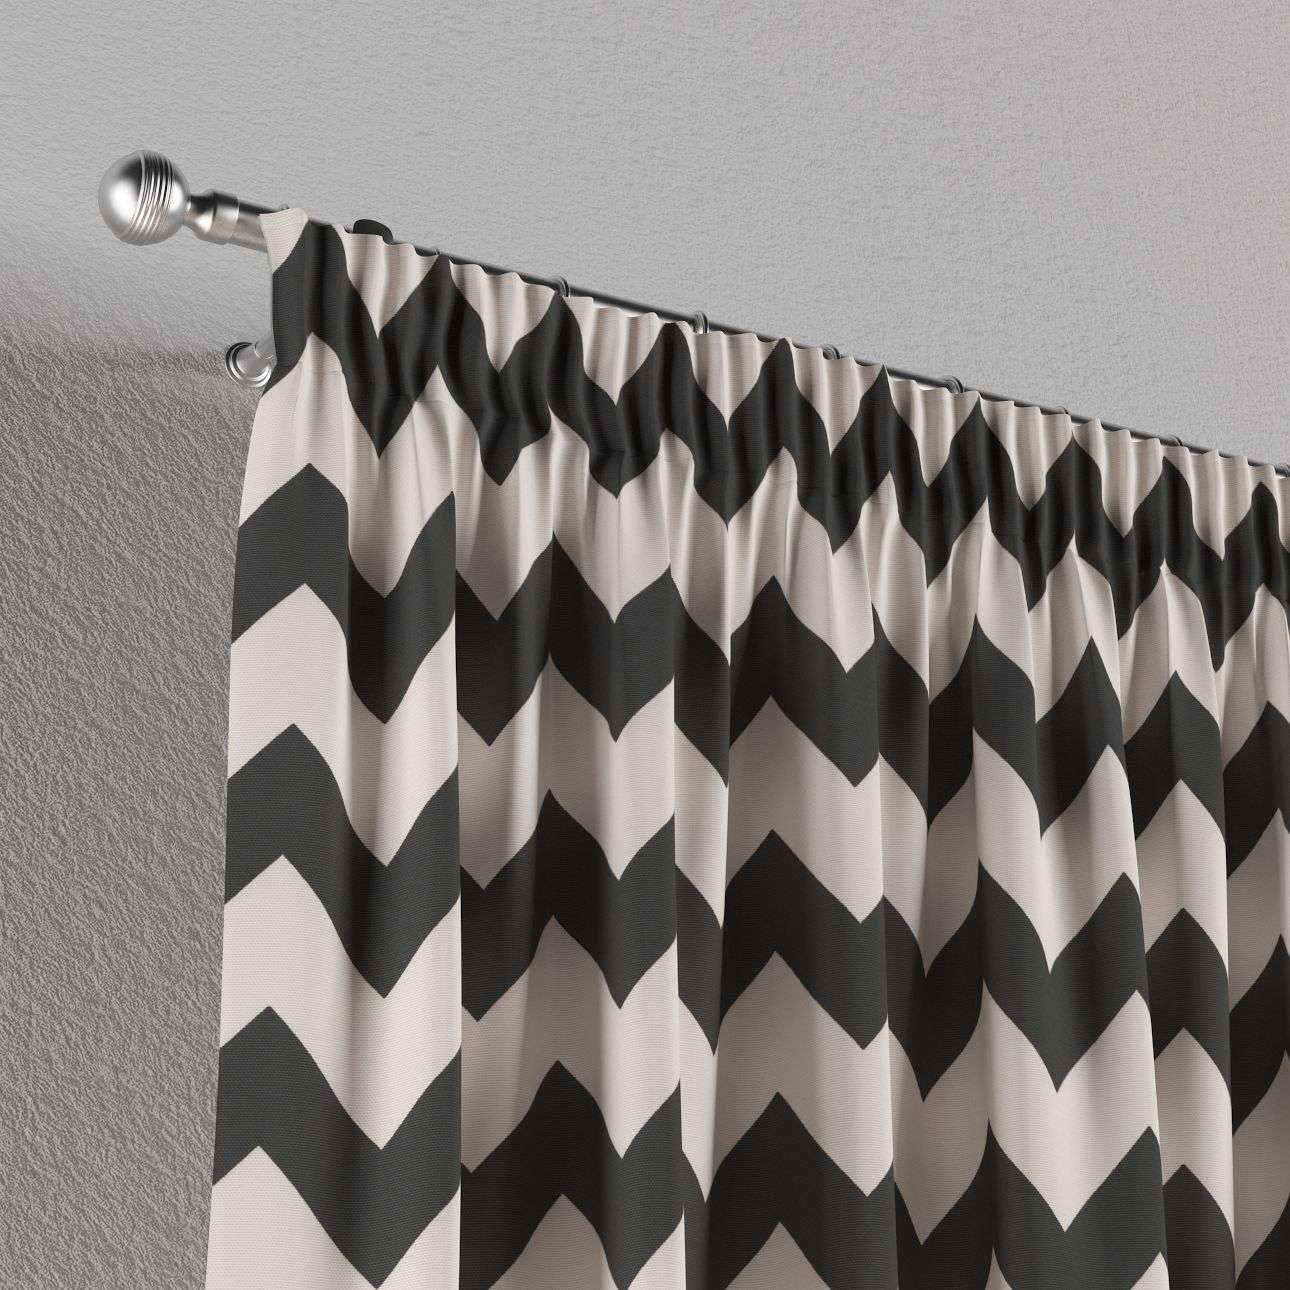 Pencil pleat curtains in collection Comics/Geometrical, fabric: 135-02